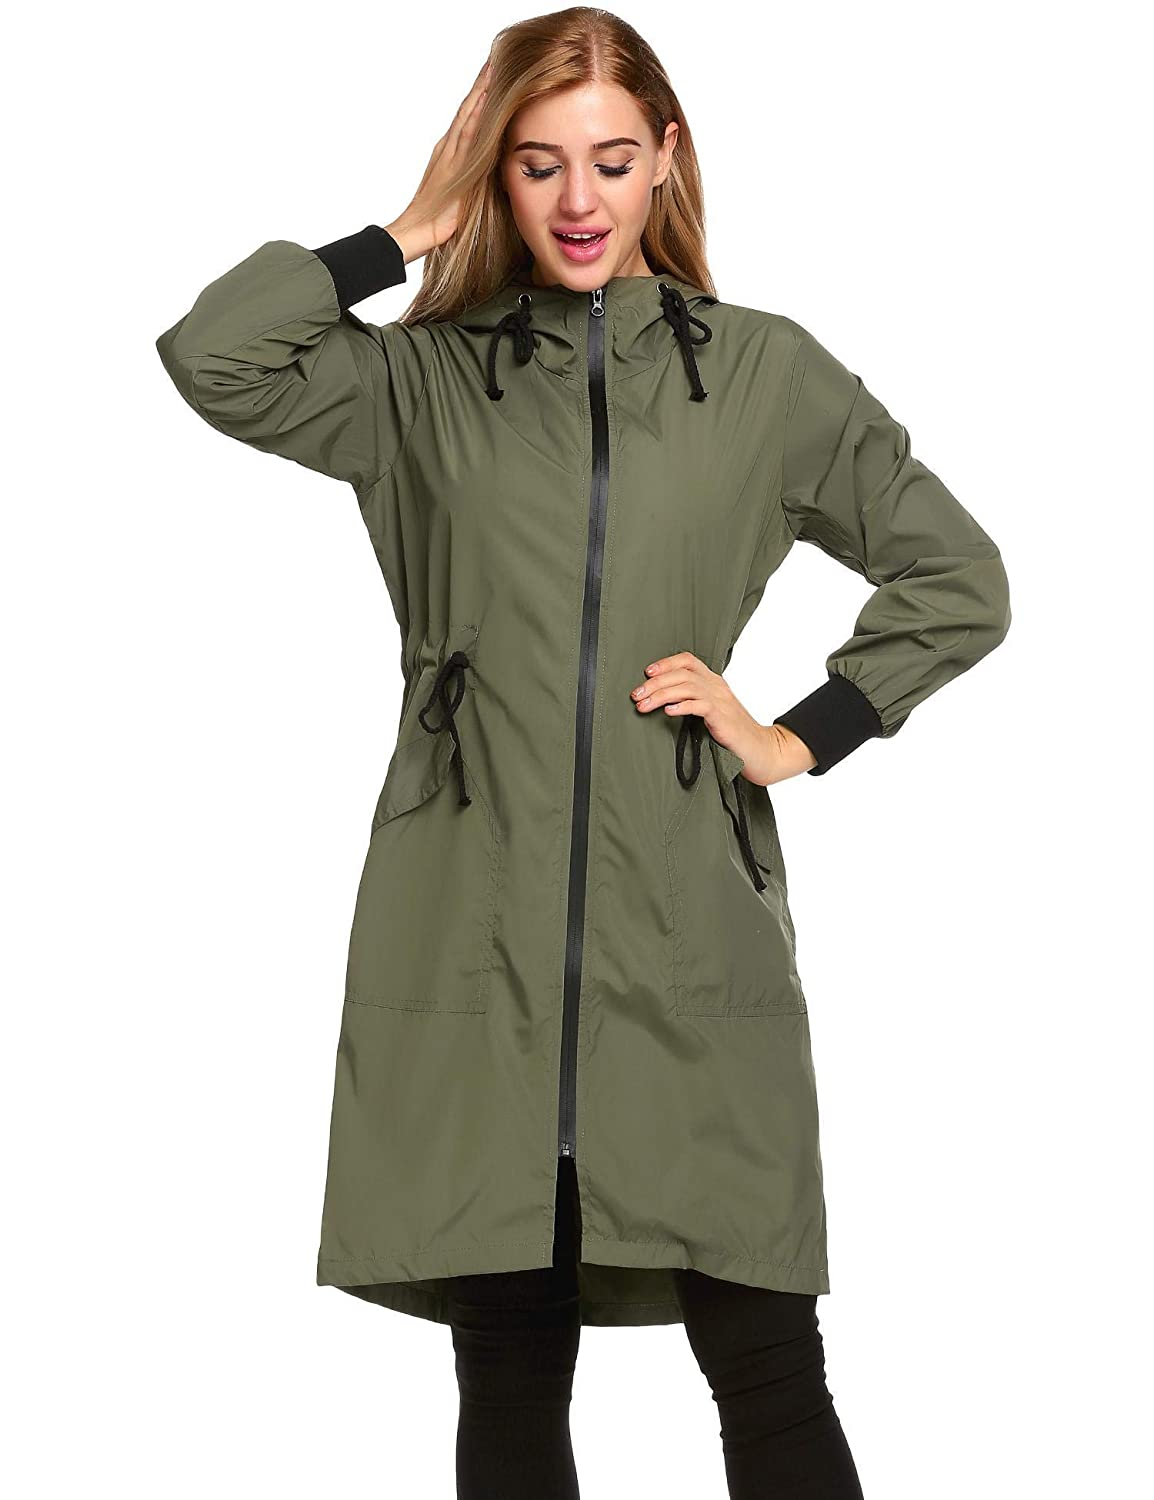 factory outlet fine craftsmanship fast color Zeagoo Women's Lightweight Waterproof Raincoat Hood Long Outdoor Hiking  Rain Jacket